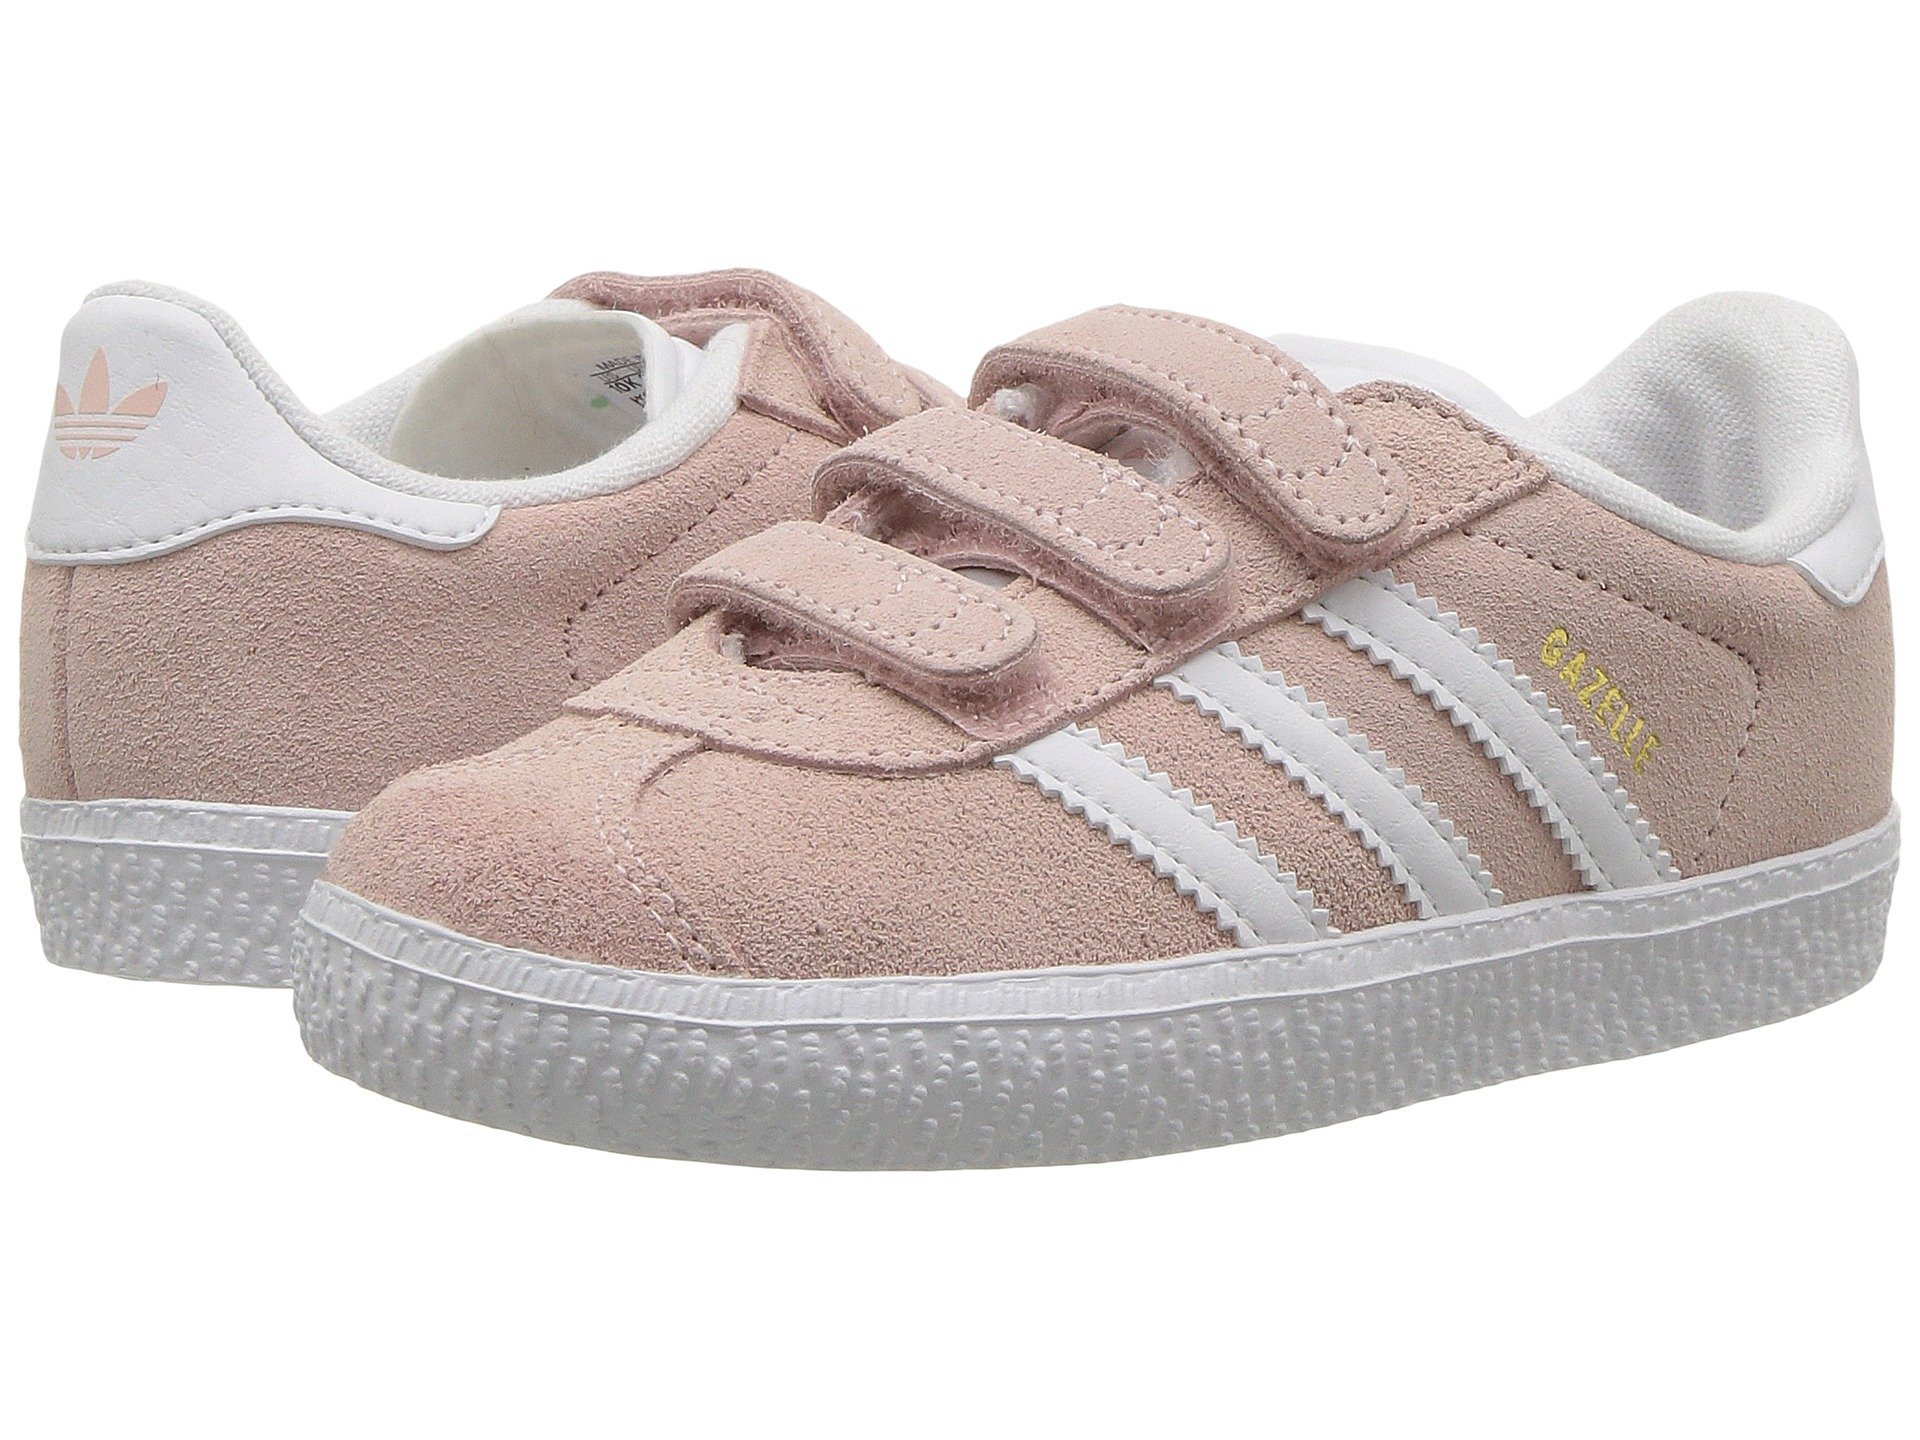 83fd91937 adidas Originals Kids Shoes Latest Styles + FREE SHIPPING